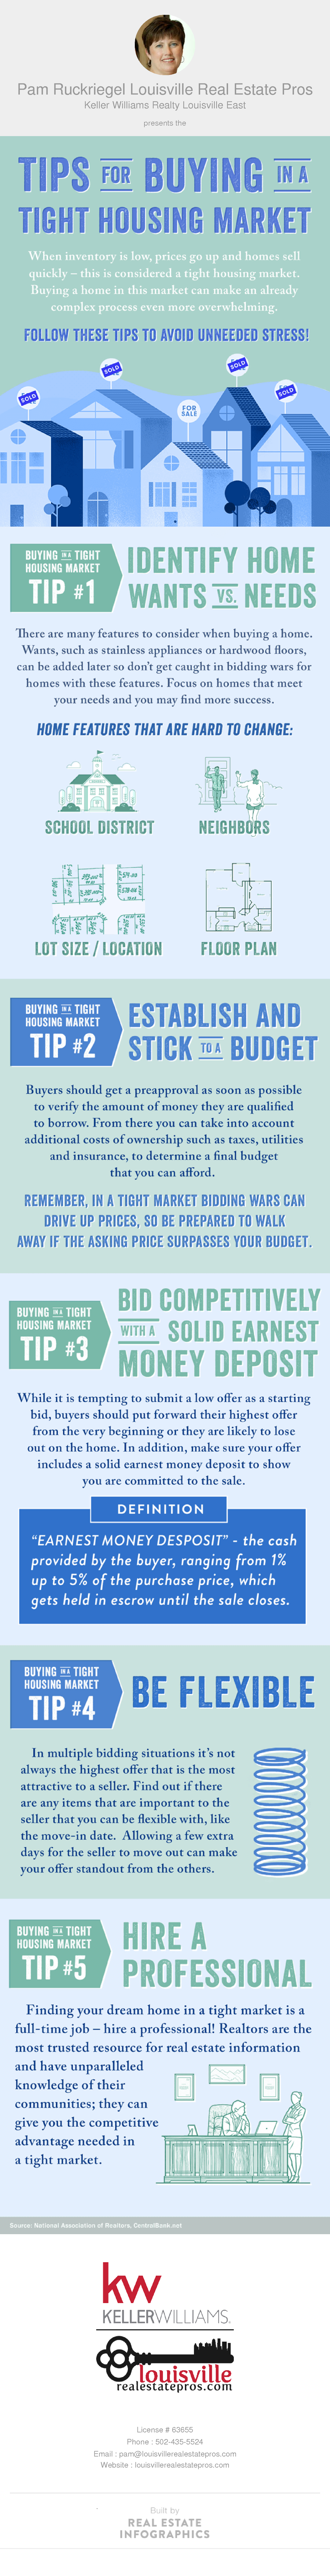 Tips for Buying in a Tight Housing Market